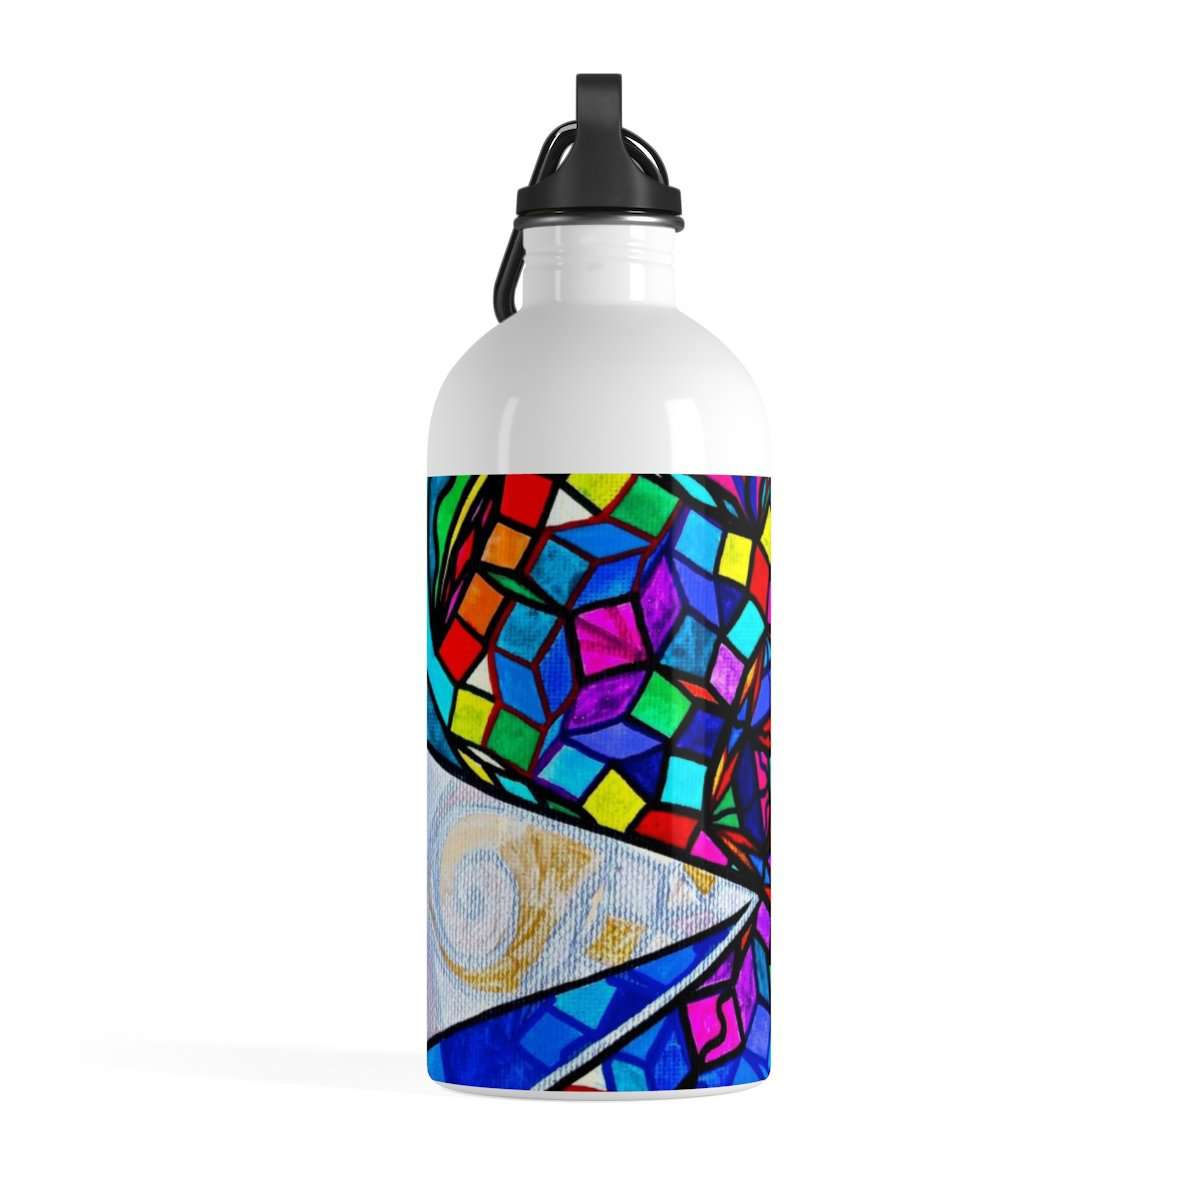 Elucidate Me - Stainless Steel Water Bottle